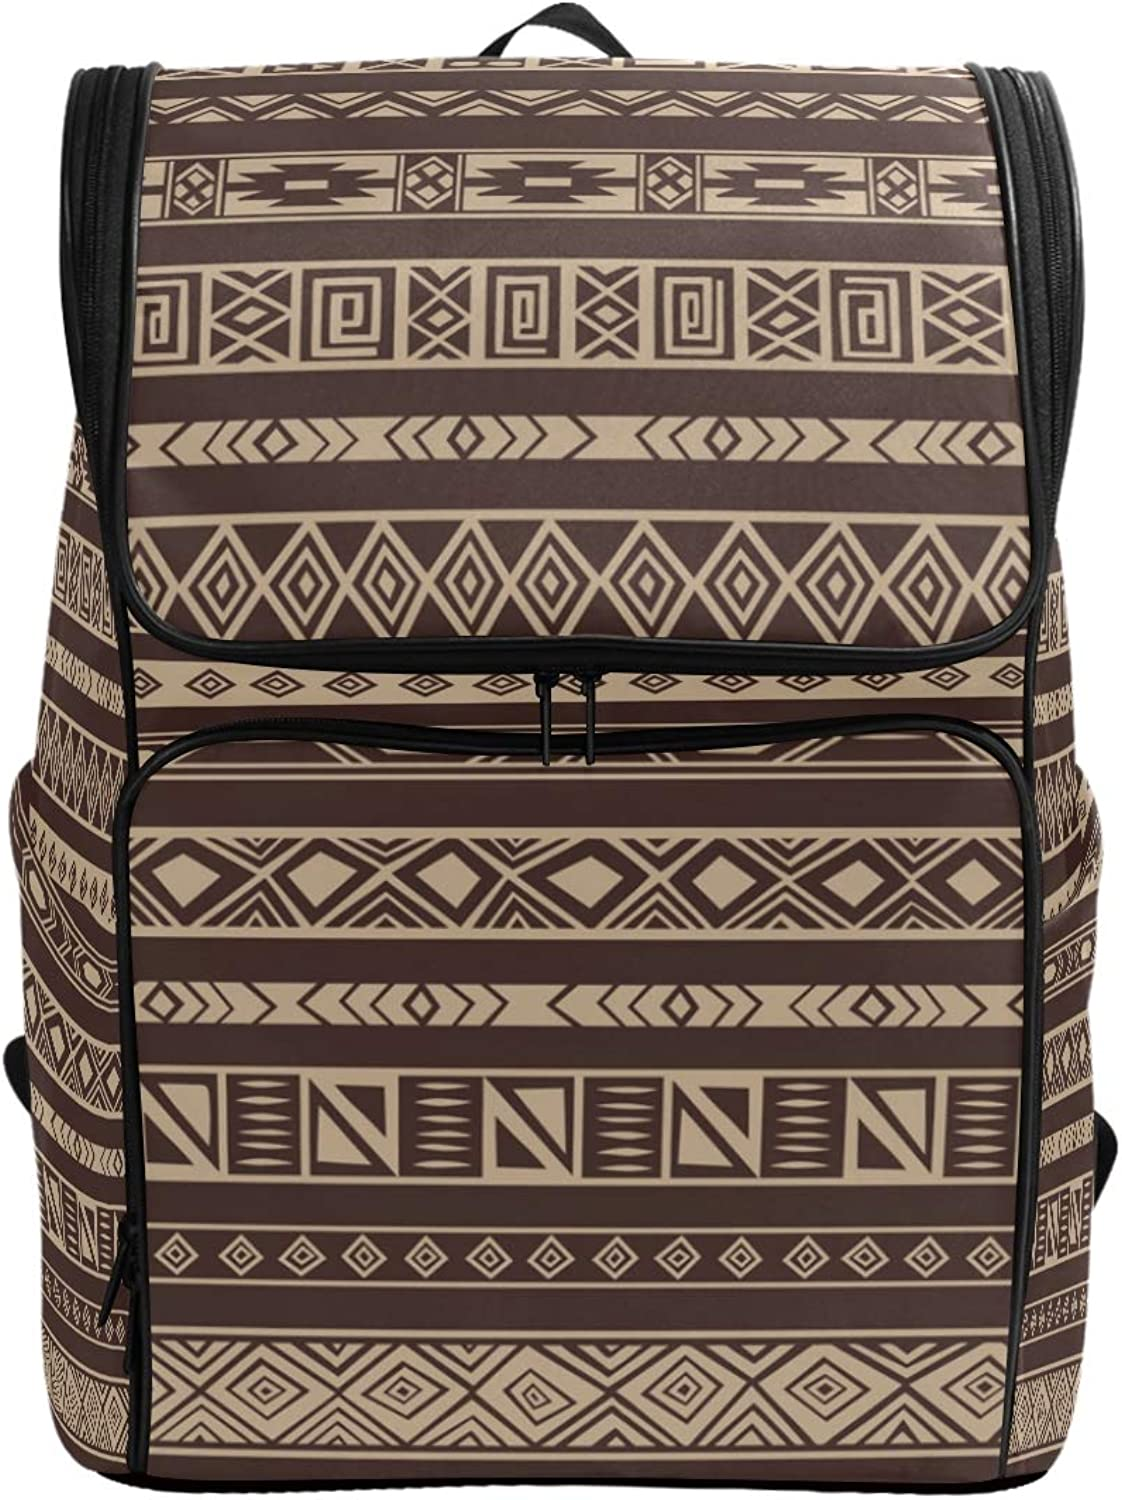 FANTAZIO African Rug Pattern Laptop Outdoor Backpack Travel Hiking Camping Rucksack Pack, Casual Large College School Daypack